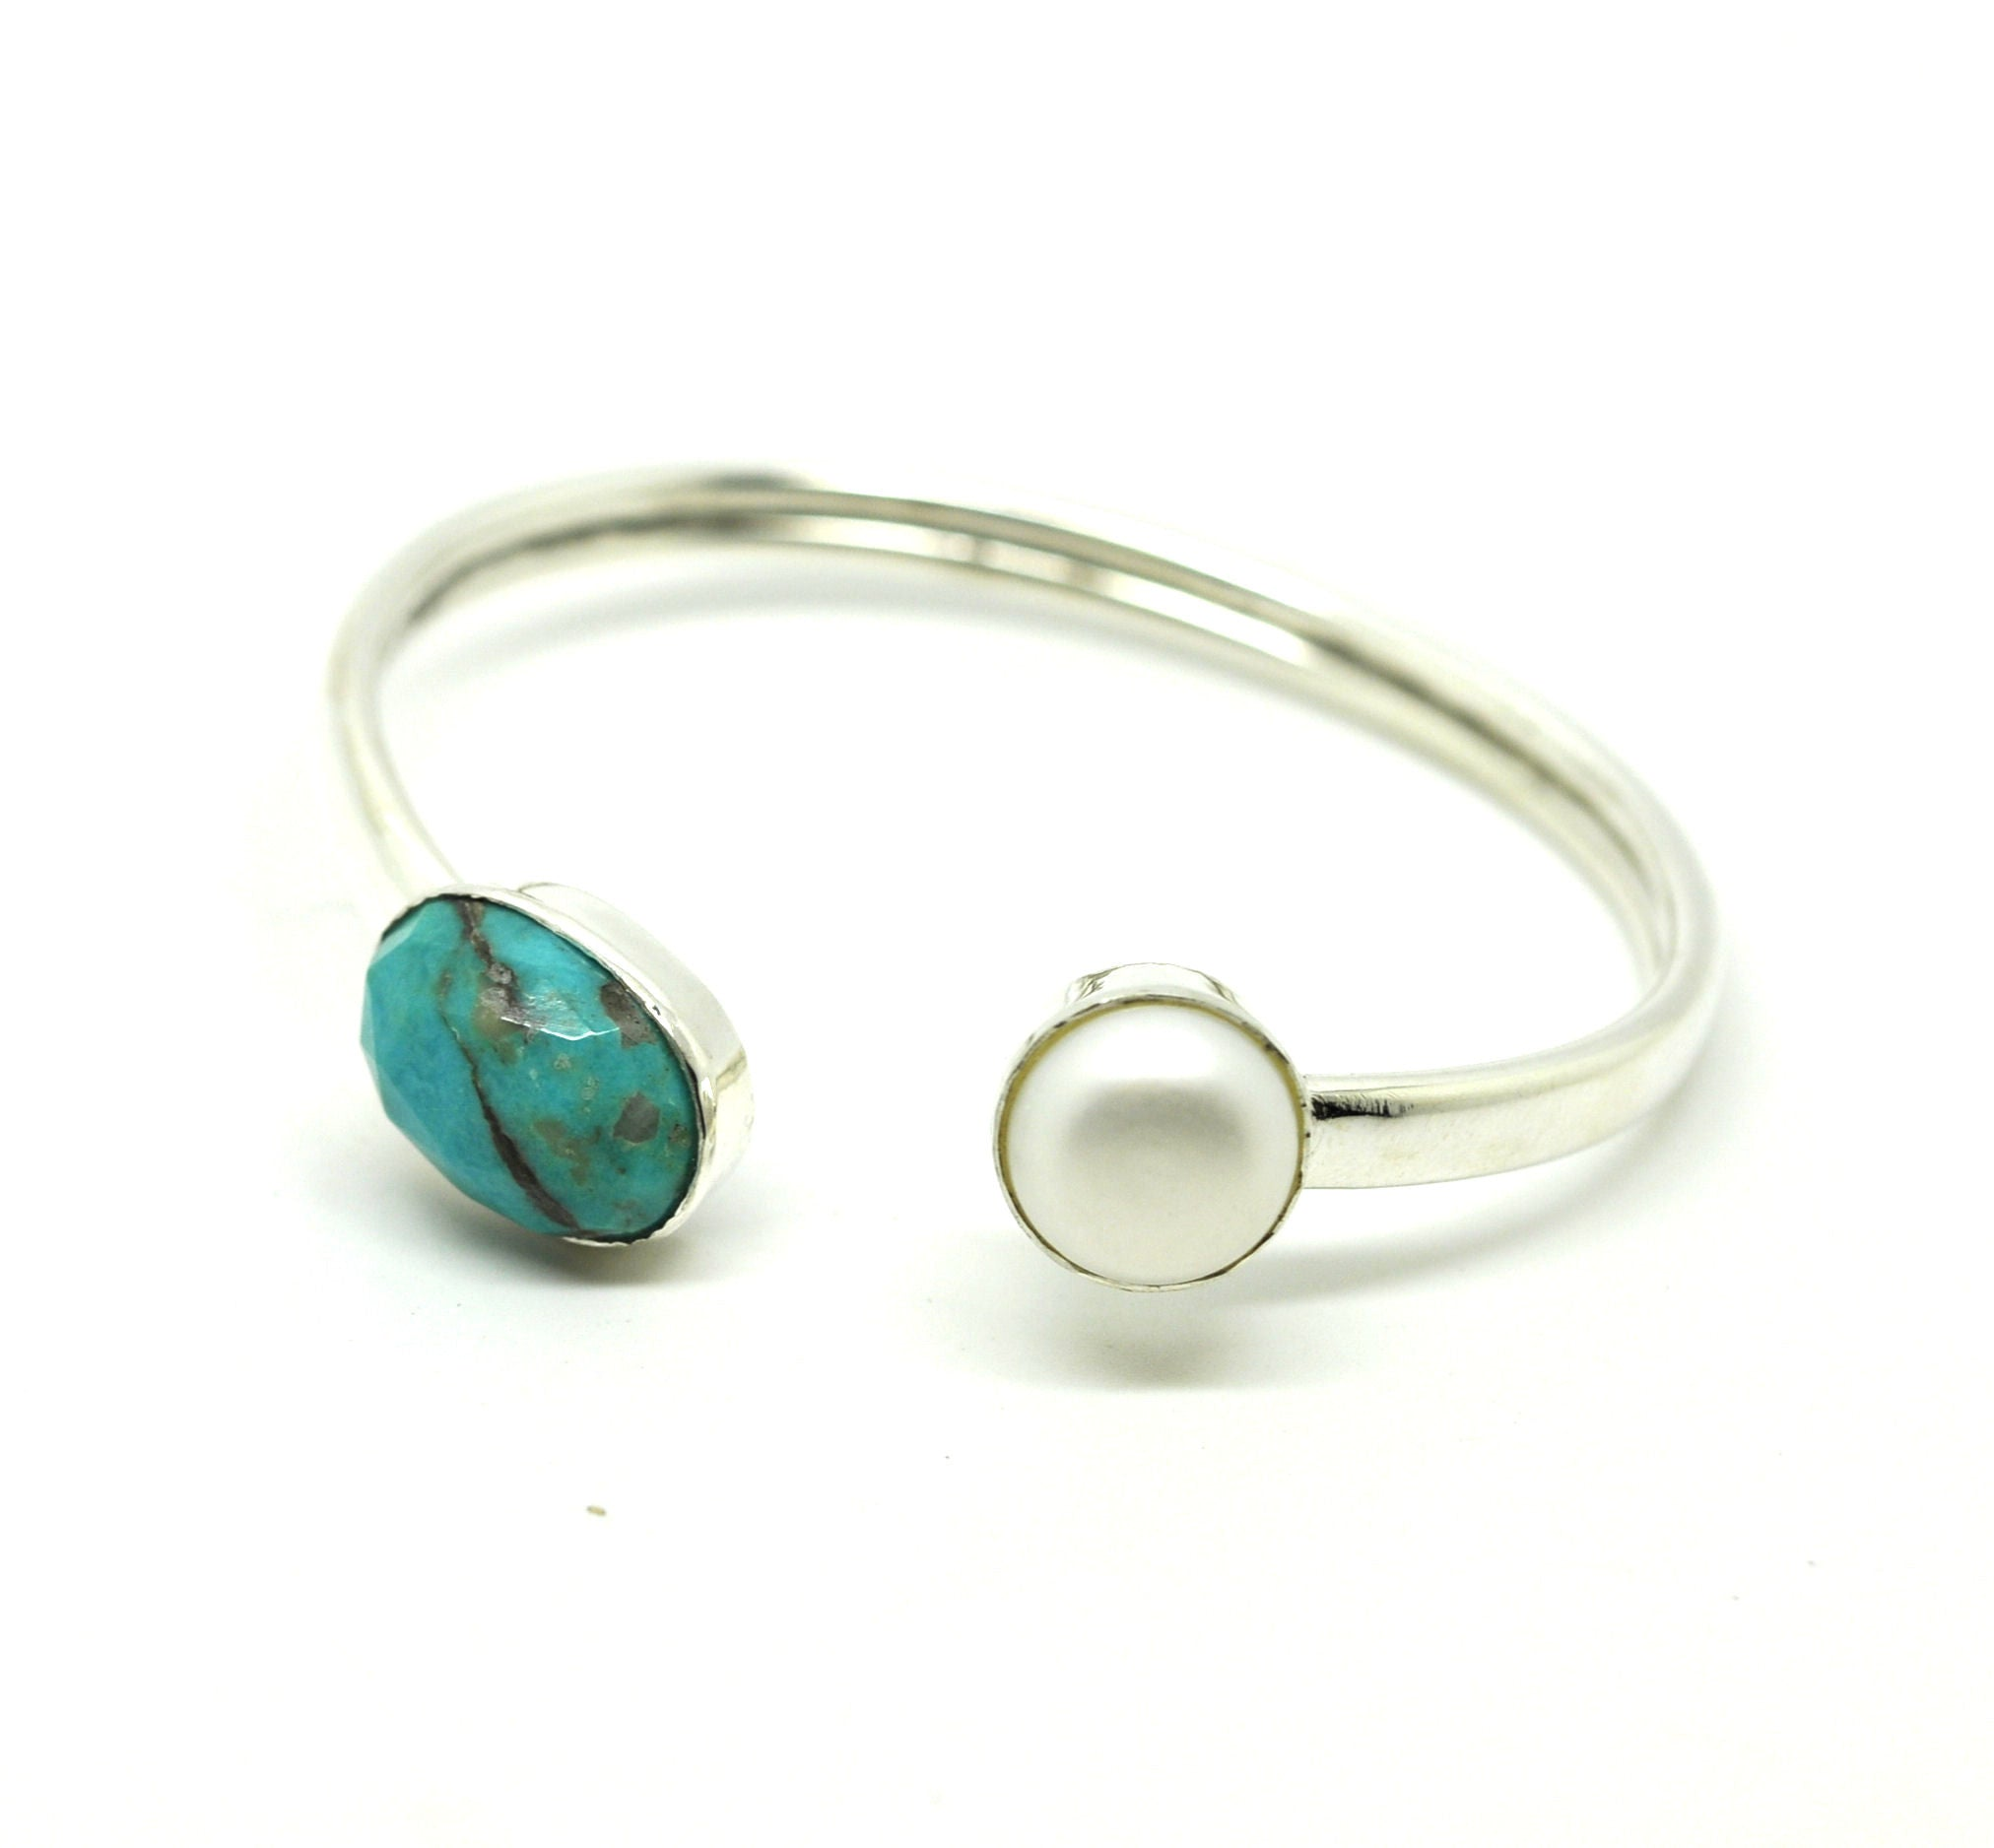 SOLD - ON SALE Thin cuff - Pearl and Turquoise (clearance)